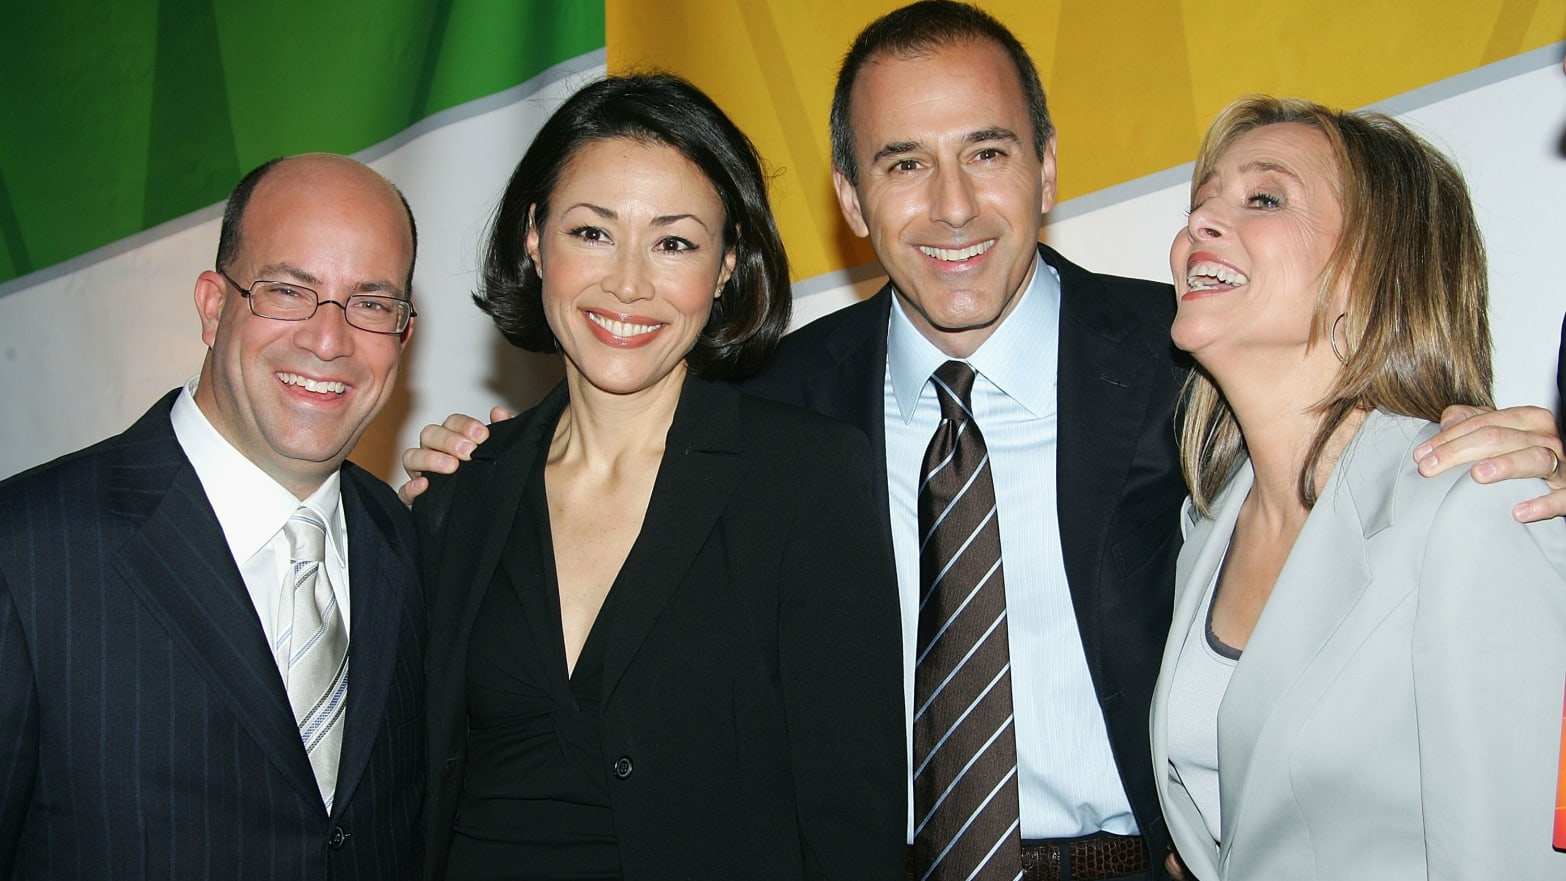 Disgraced Former NBC 'Today' Anchor Matt Lauer Comes Out of